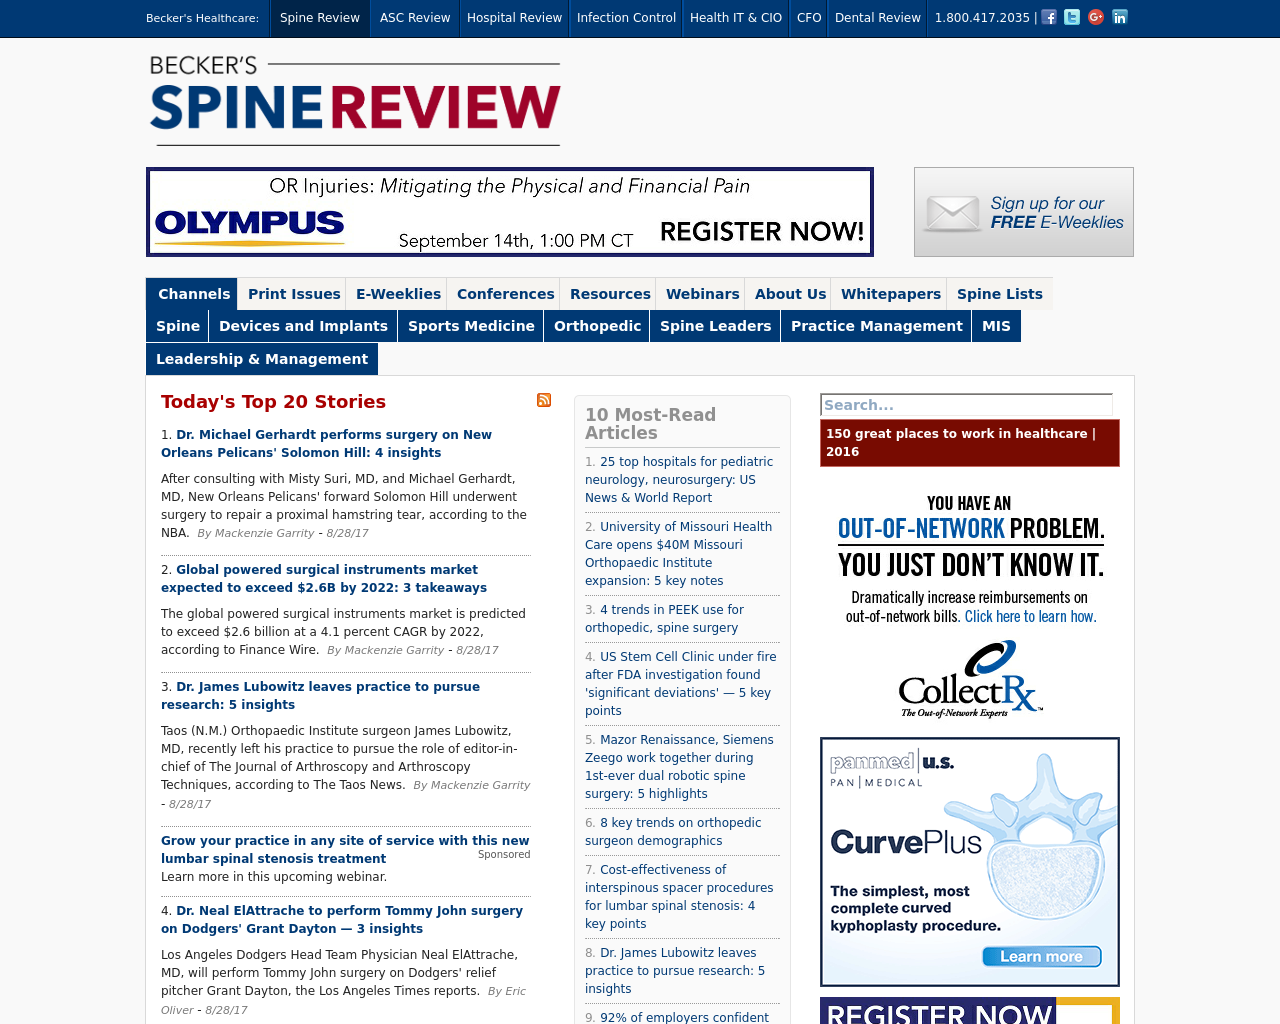 Becker's-Spine-Review-Advertising-Reviews-Pricing